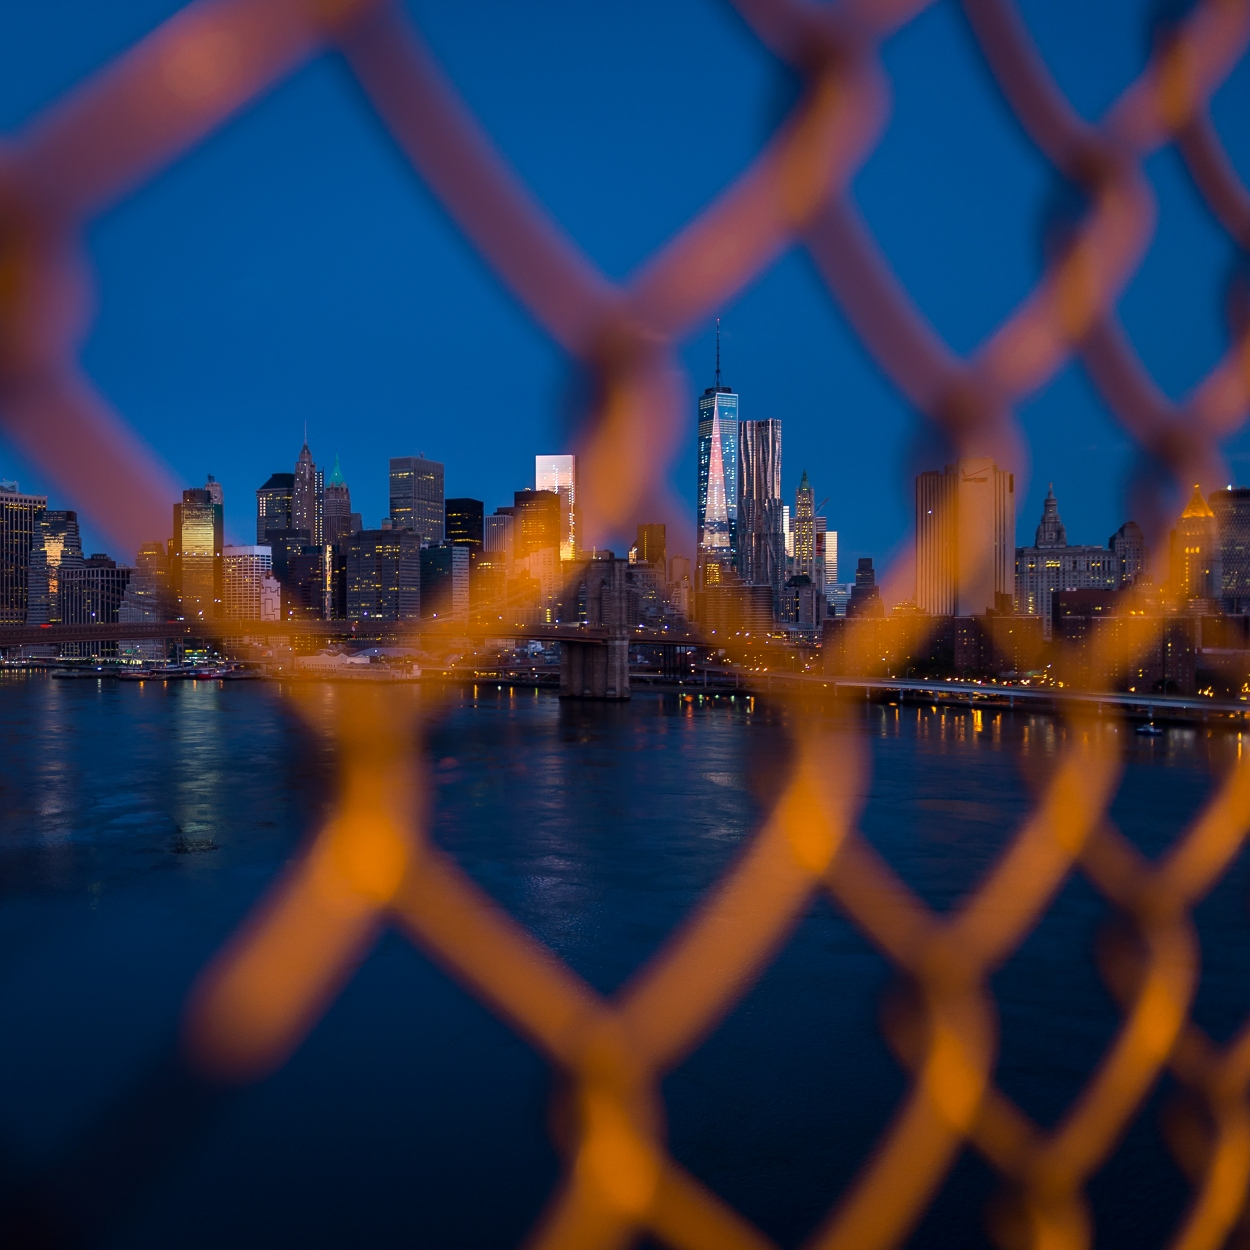 Through the fence